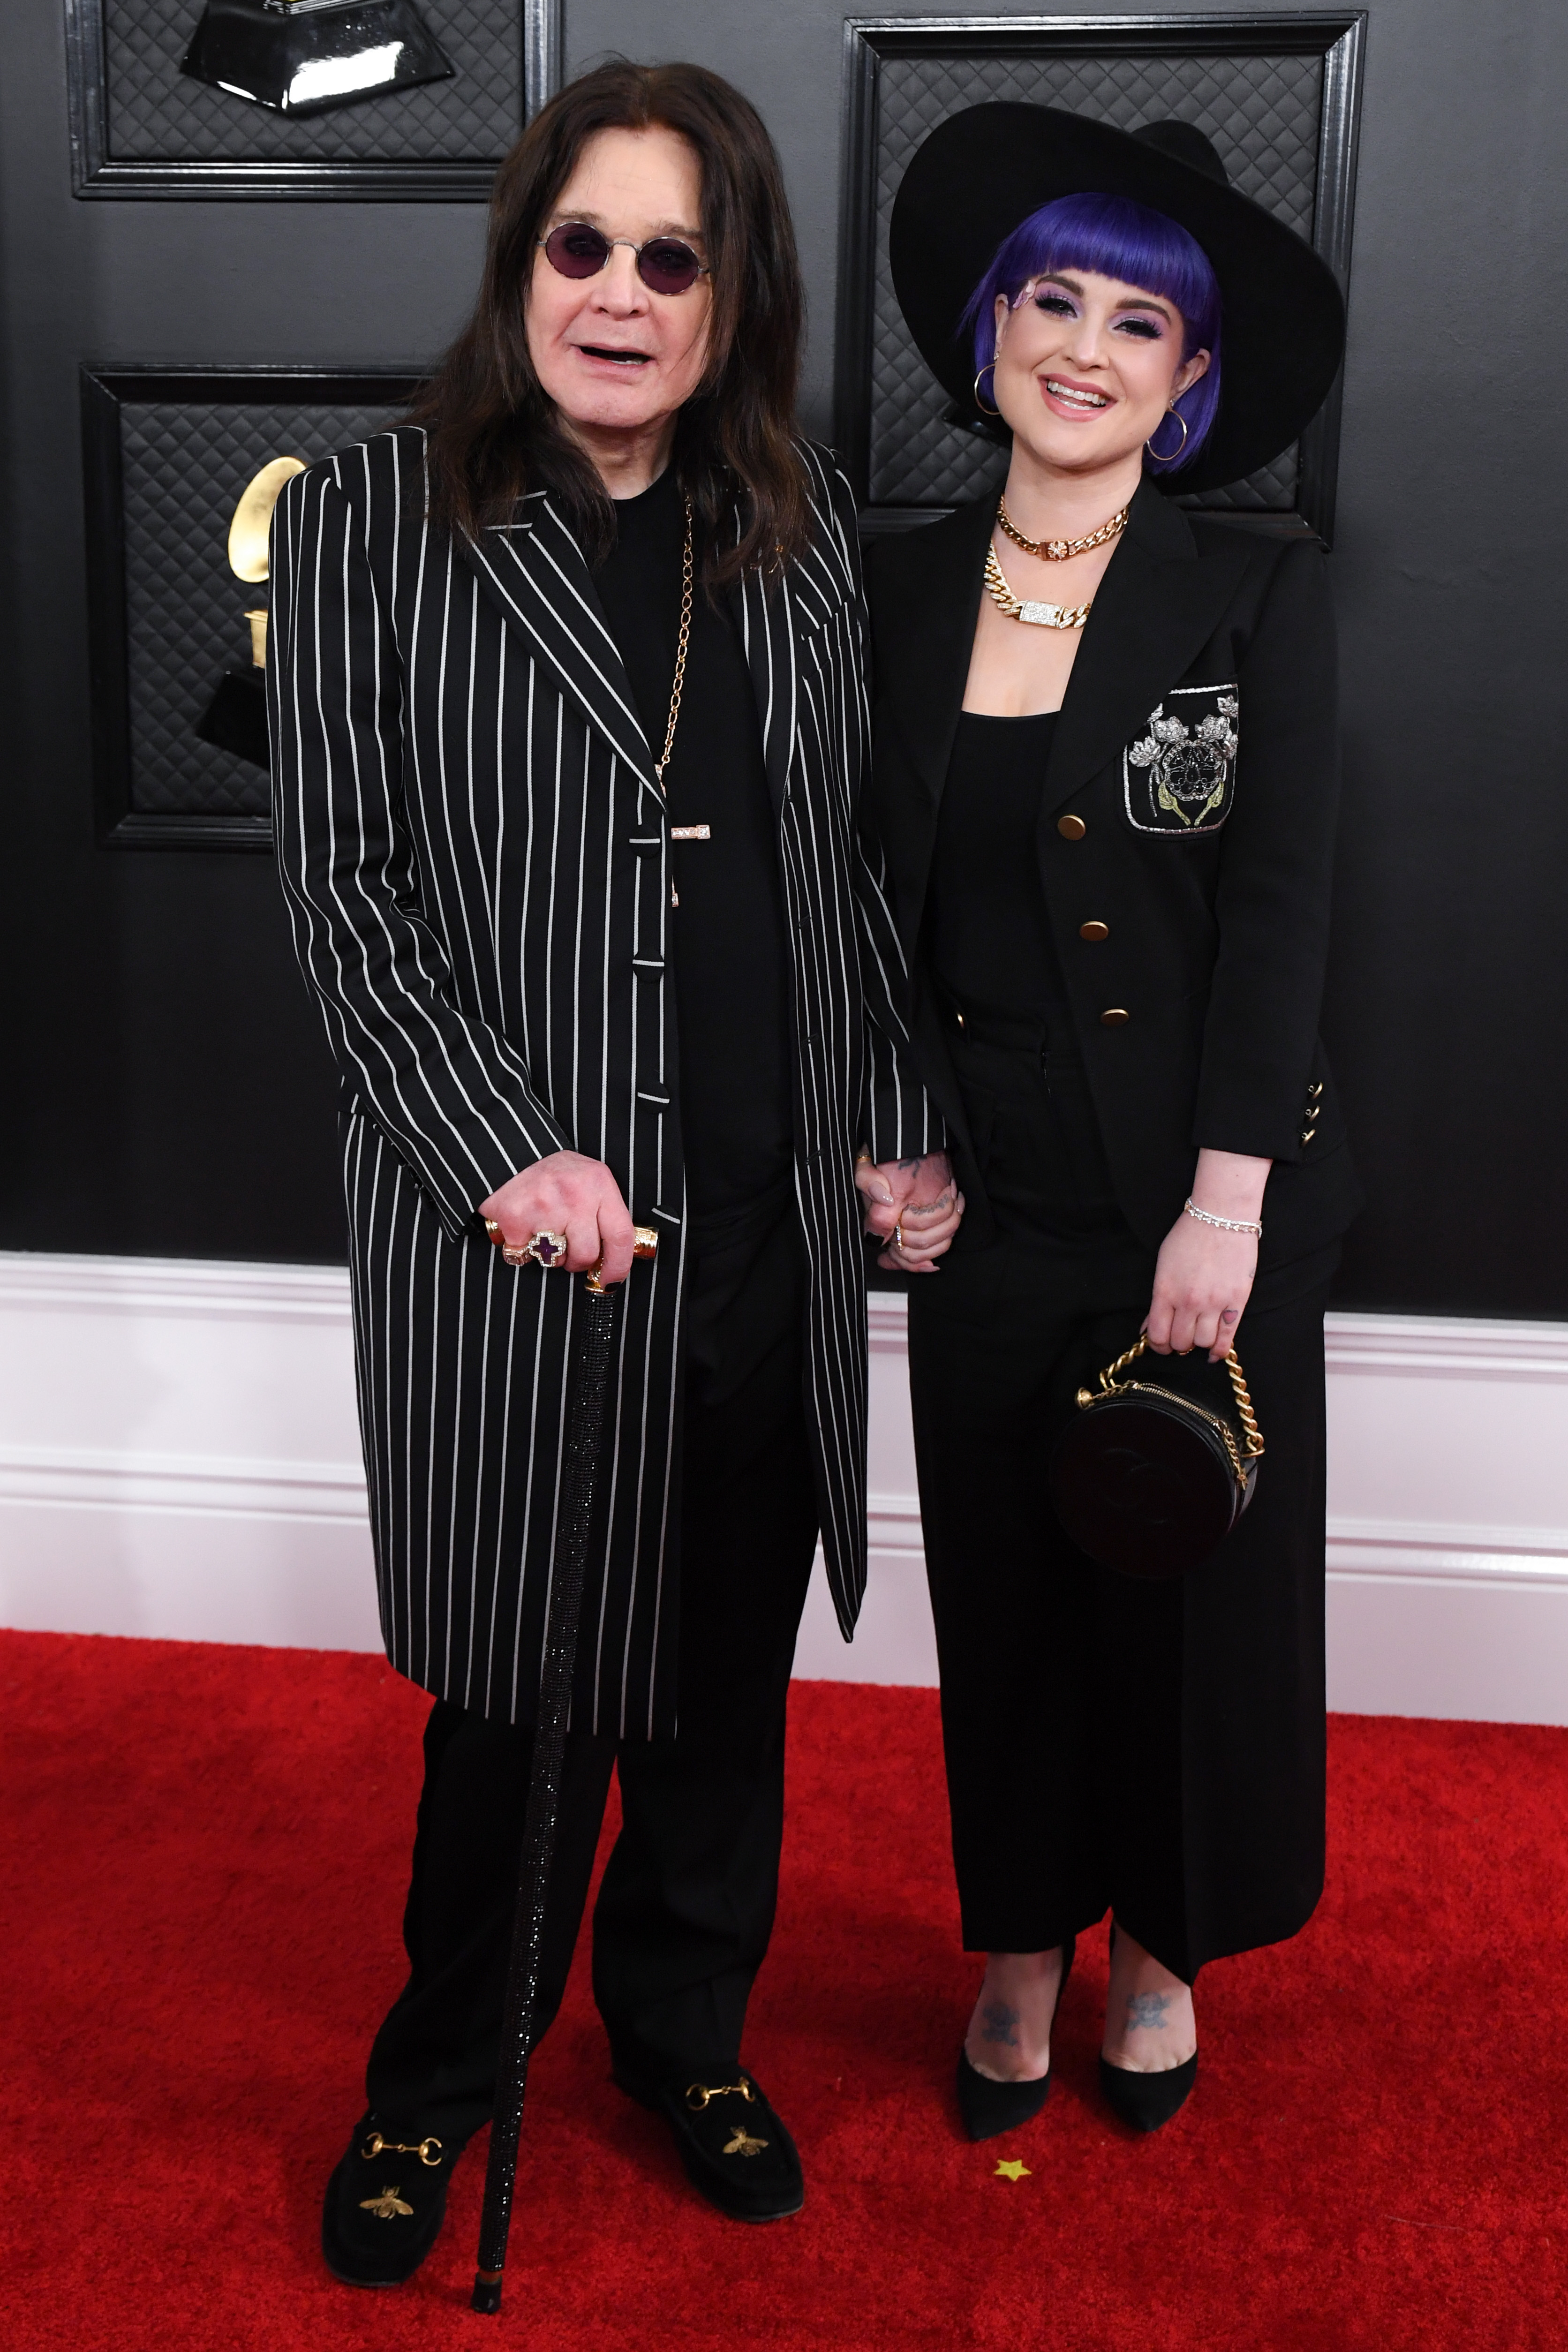 Ozzy Osbourne Walks 2020 Grammys Red Carpet With Daughter Kelly Just Days After Parkinson's Reveal